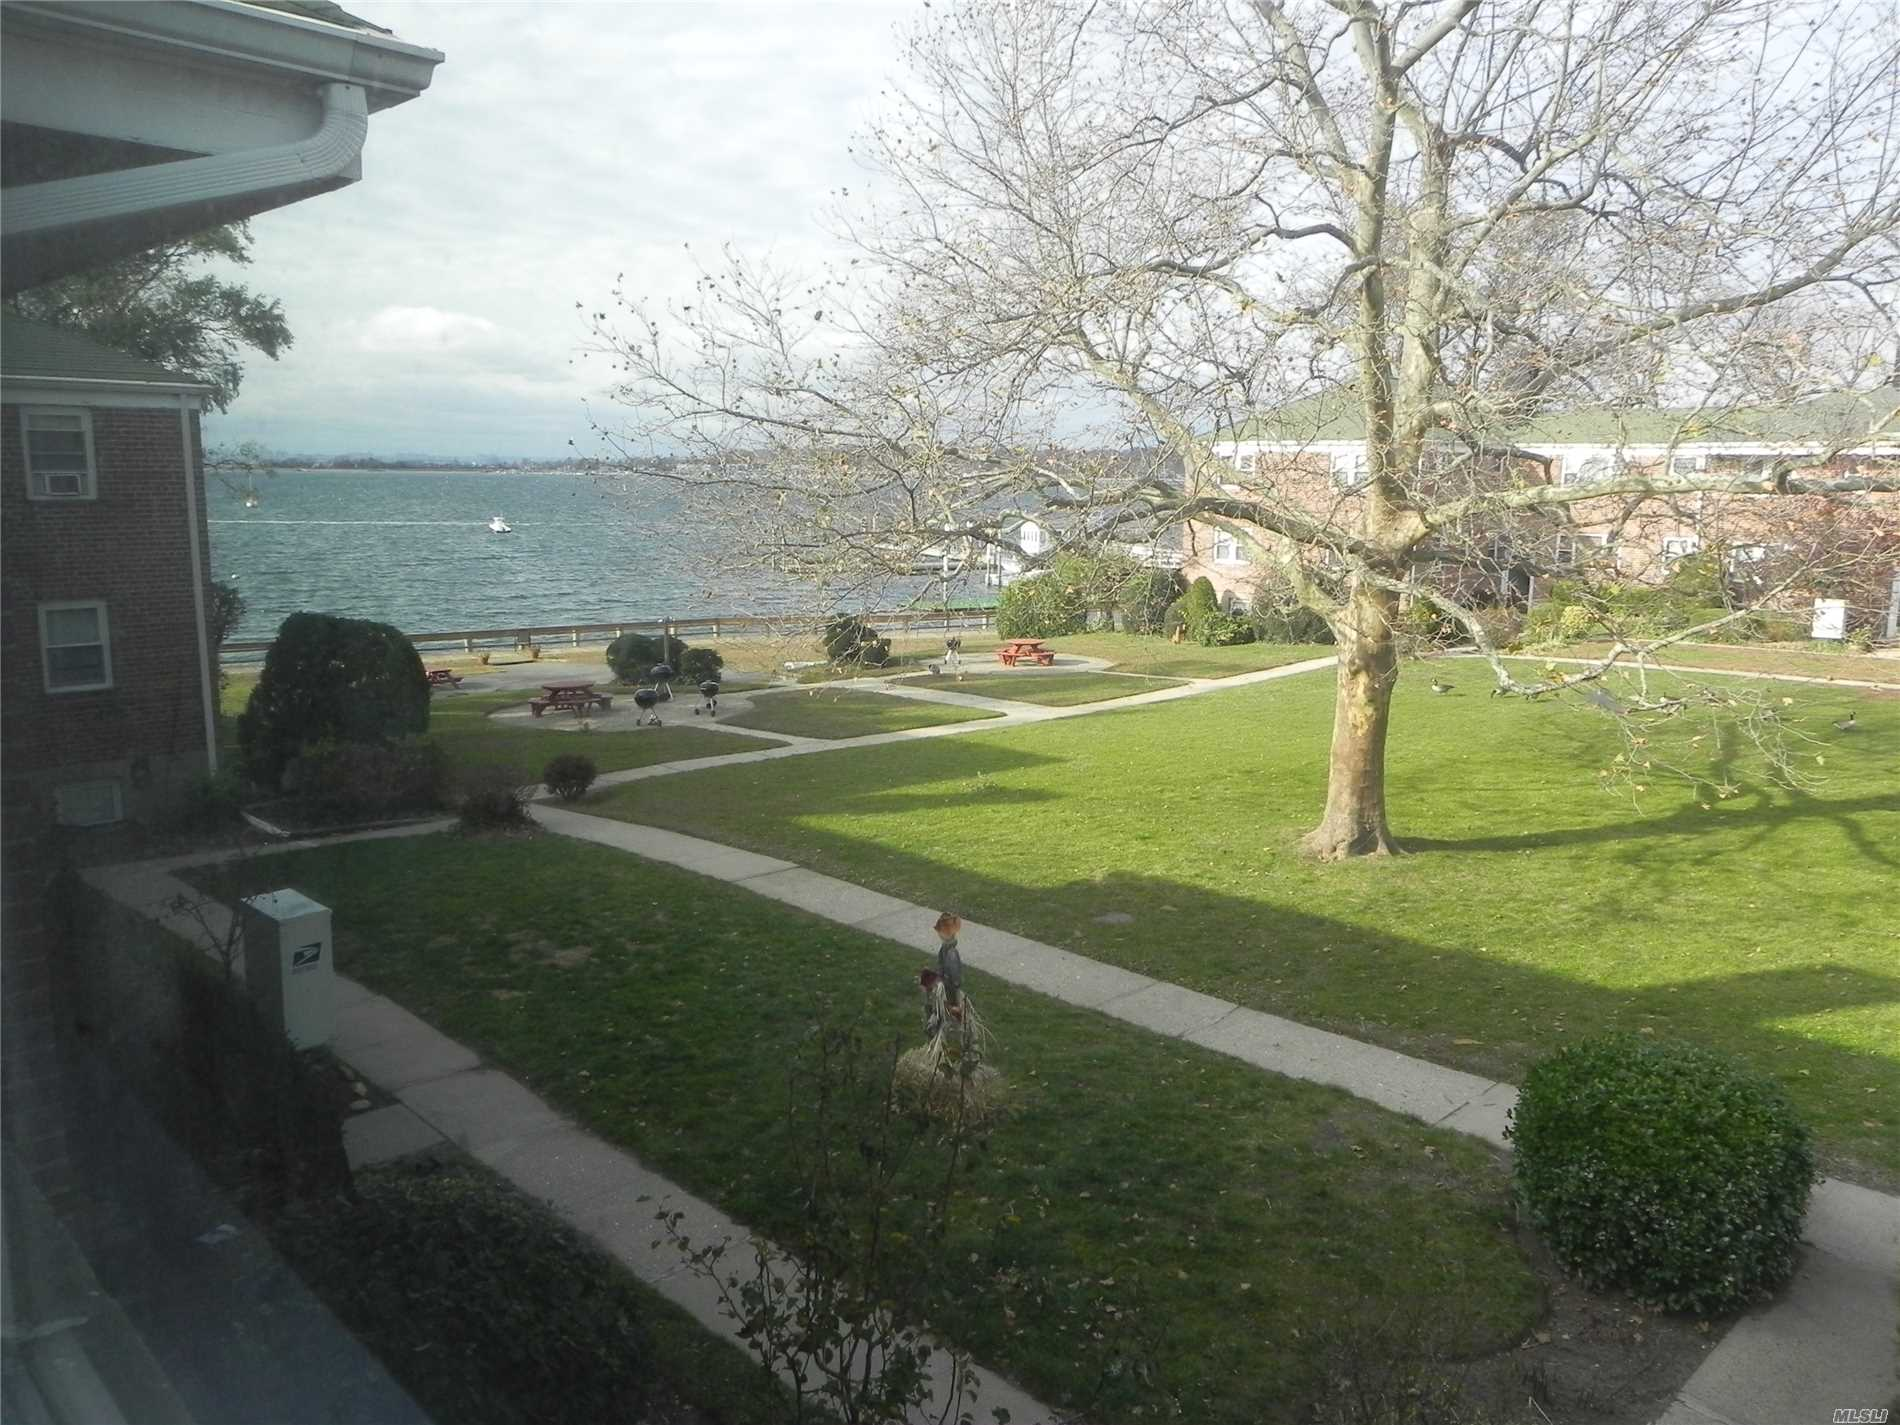 Port Washington. Second Floor, 2 Bedroom/1 Bath Pet-Friendly Unit With Waterviews In Garden Apt Complex Right On Manhasset Bay. Combo Living Room/Dining Room, Updated Eik, Spacious Bedrooms. Heat & Water Included. Laundry Facilities On Site. Shuttle To Lirr M-F, Am/Pm Rush, On Site Super.